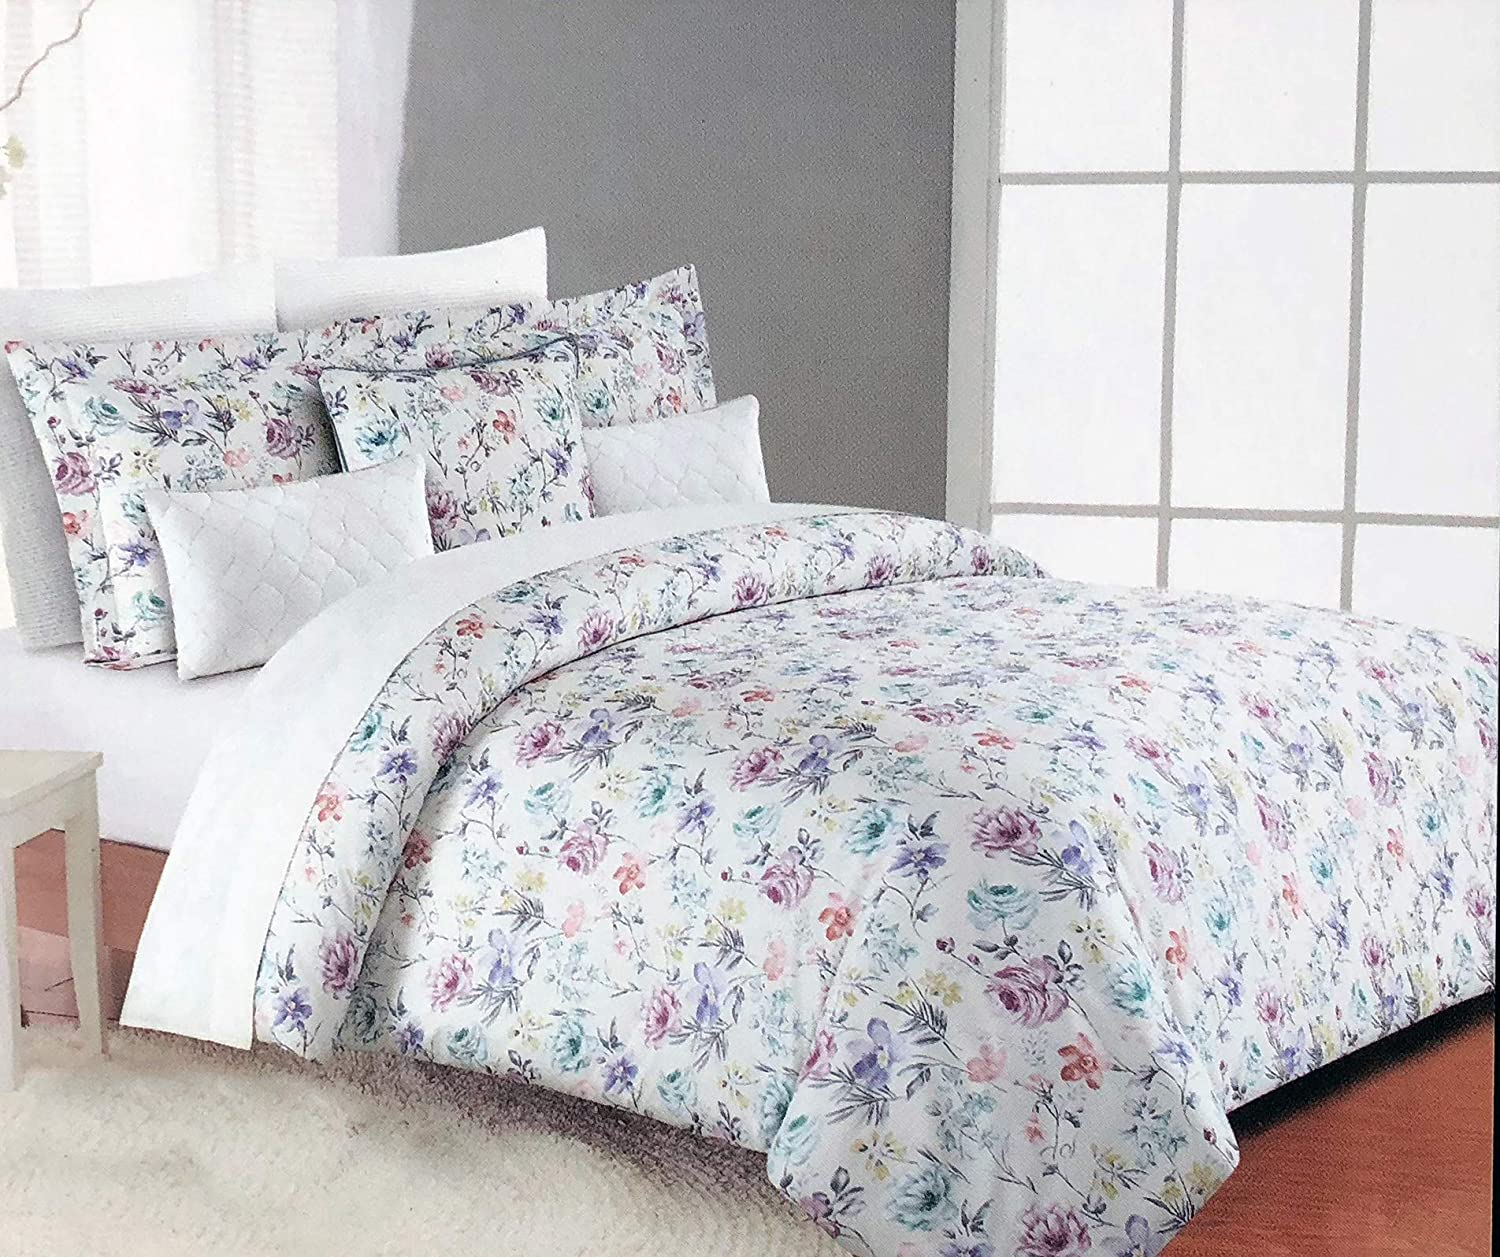 Tahari Home Maison Bedding 3 Piece King Size Luxury 3 Piece Duvet Comforter Cover Shams Set Floral Flowers Pattern in Shades of Yellow Purple Pink Green Blue on White - Green Leaves